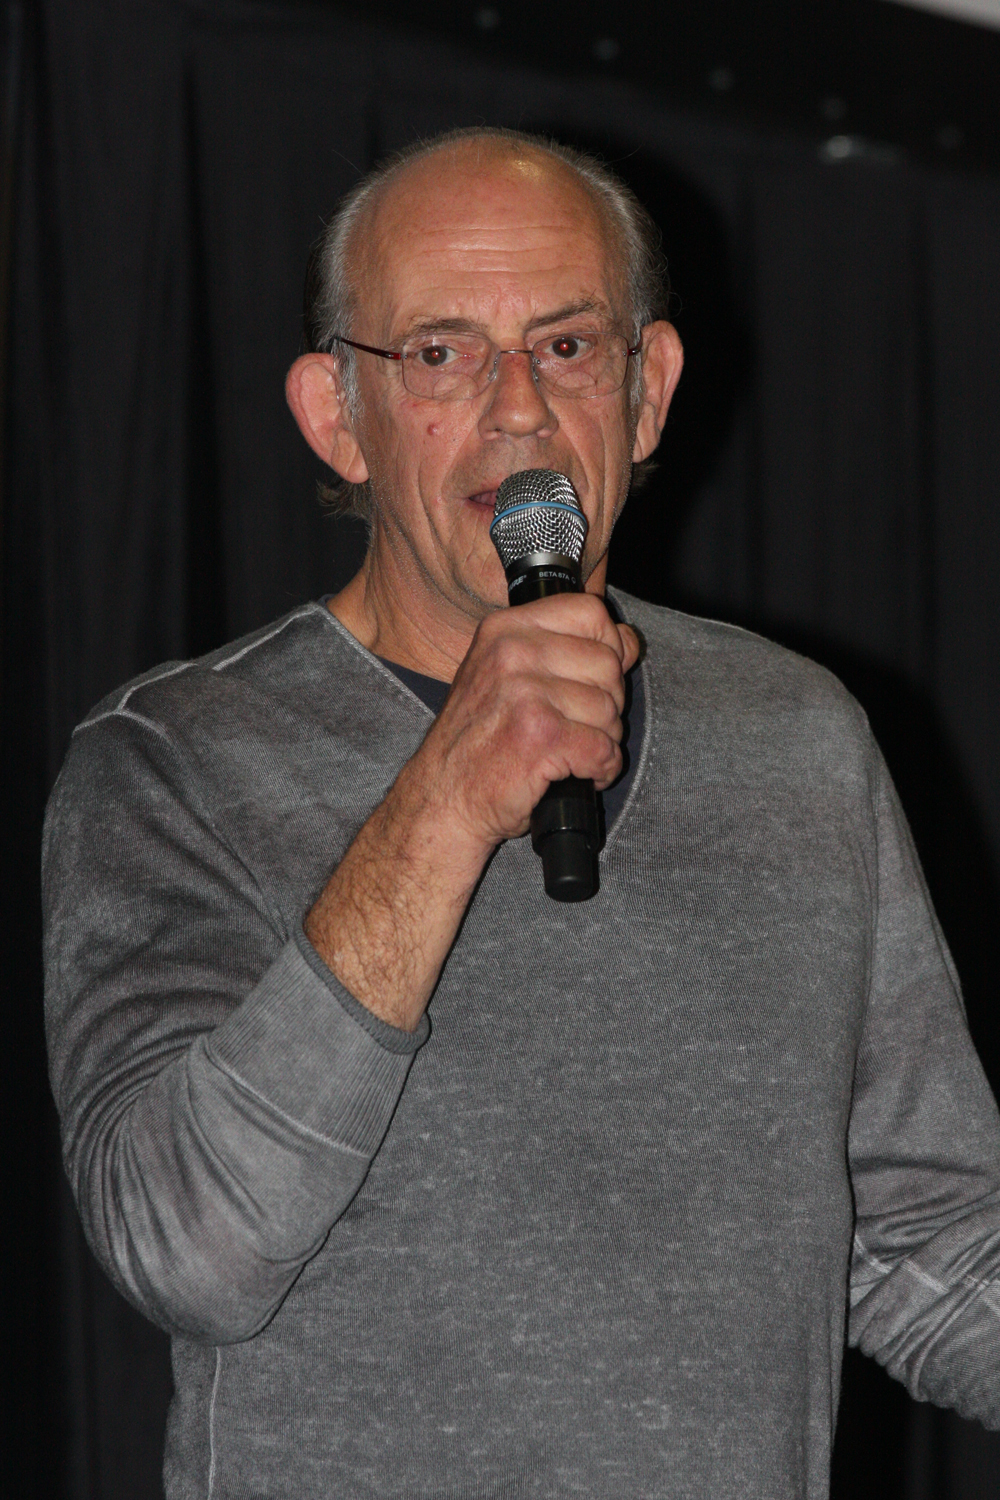 Christopher Lloyd Switchblade Sam Images & Pictures - Becuo